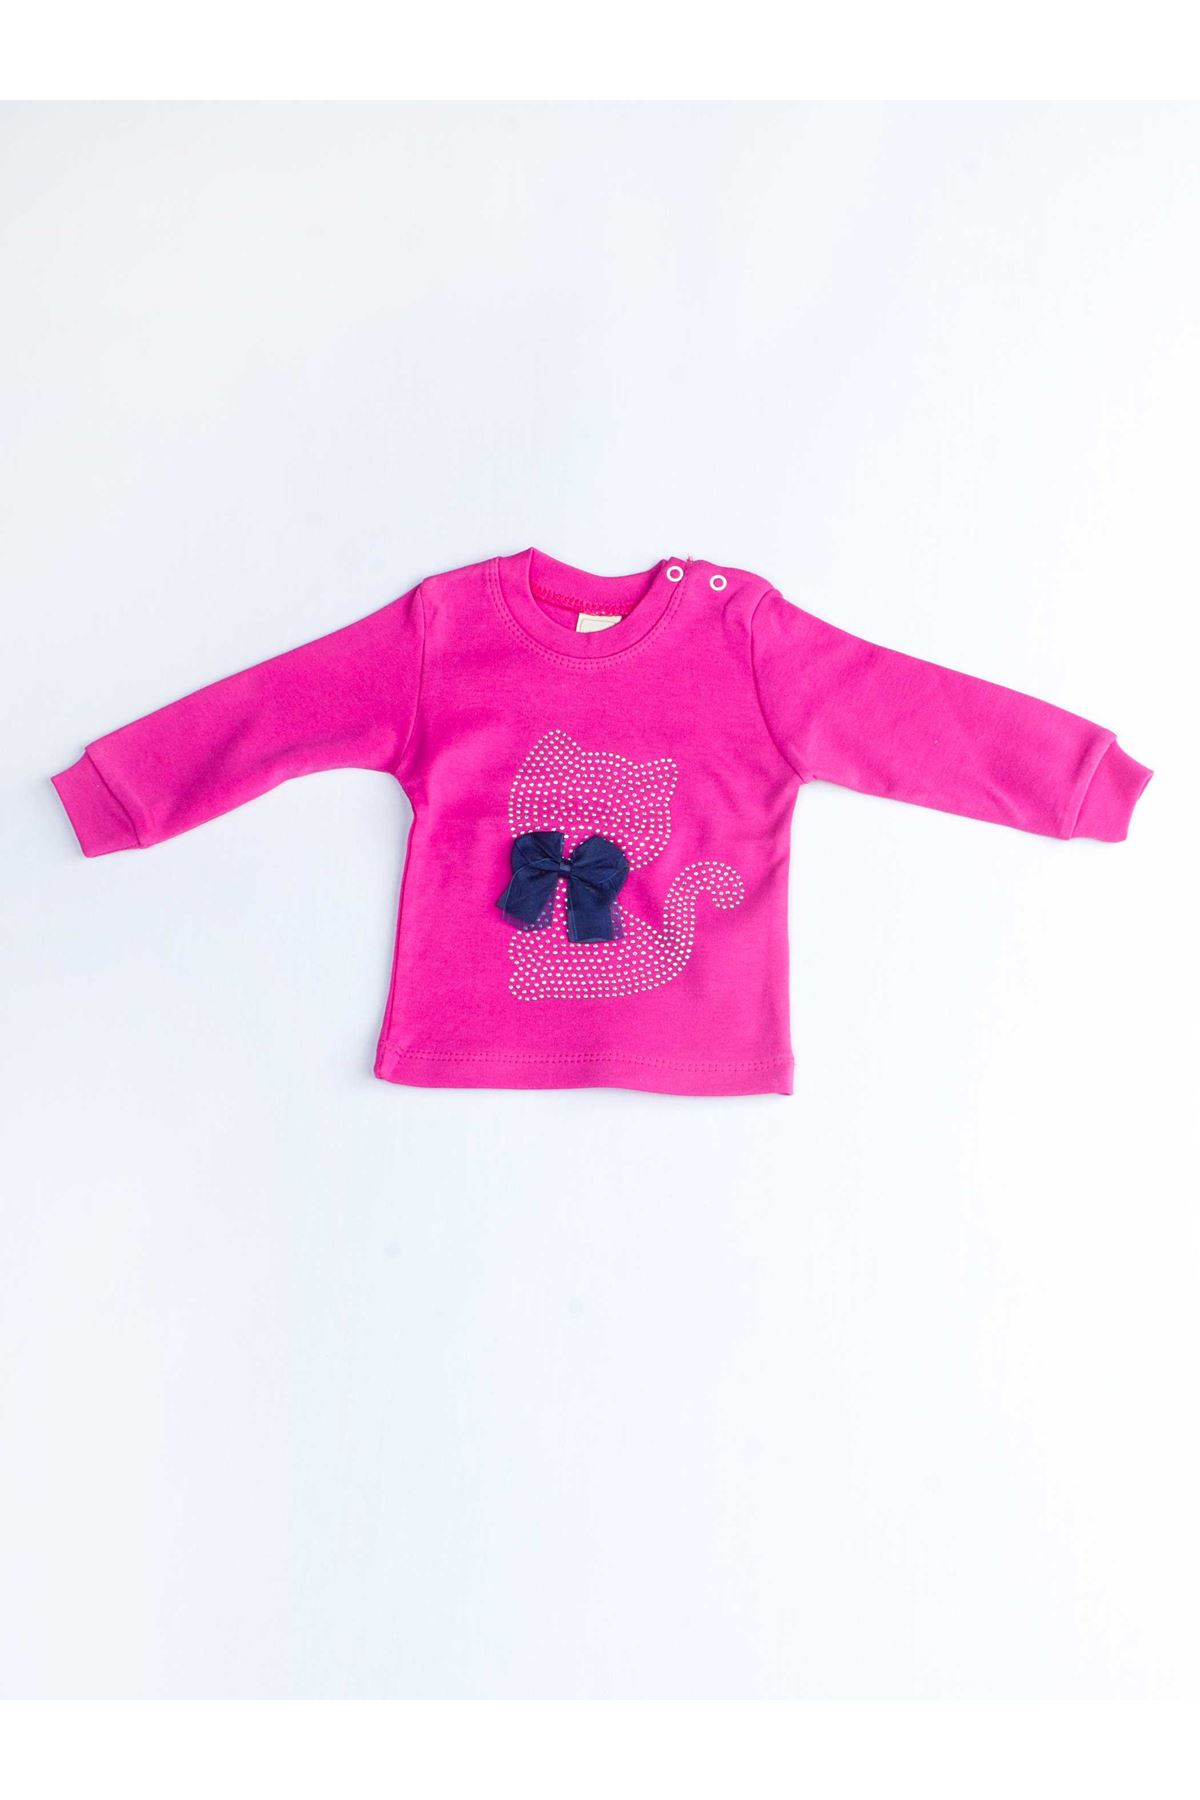 Fuchsia Baby Girl 2 Piece Set Tracksuit Bottom Babies Girls Wear Top Outfit Cotton Casual Casual Outfit Models